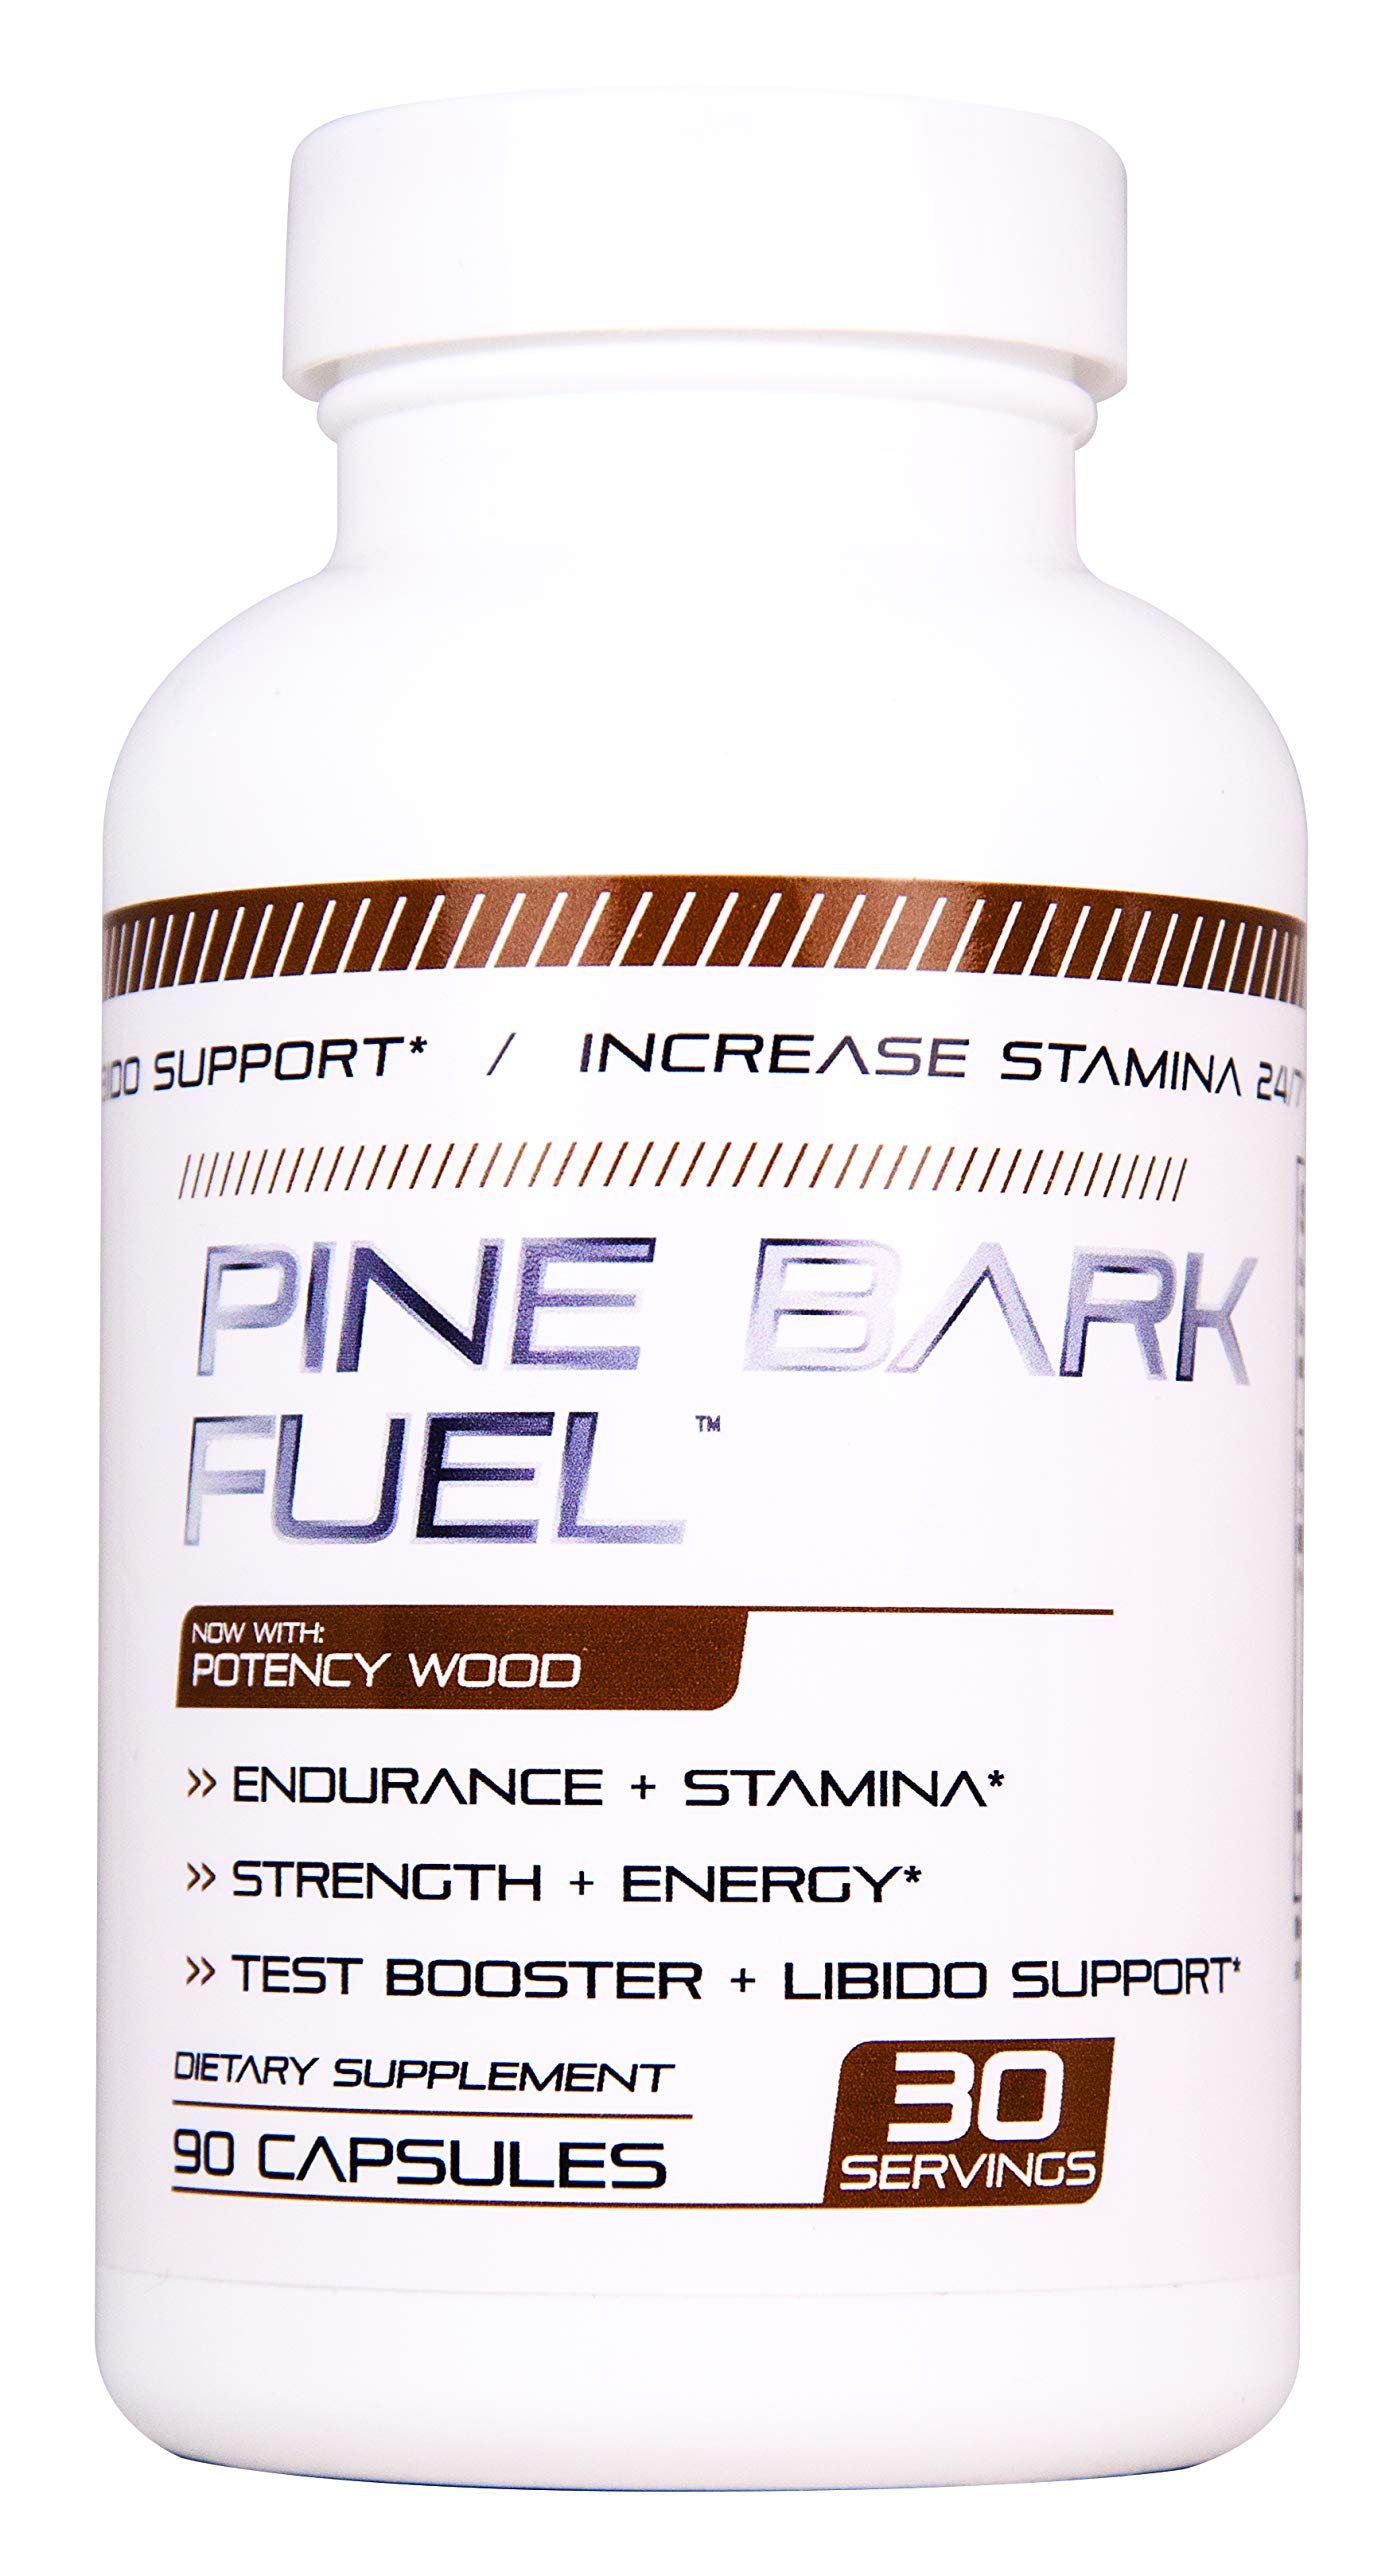 PINE BARK FUEL Male Enhancing Pills (1 Month Supply) - Enlargement Booster for Men - Increase Size, Strength, Stamina - Energy, Mood, Endurance Boost - All Natural Performance Supplement - Made in USA by NuCell